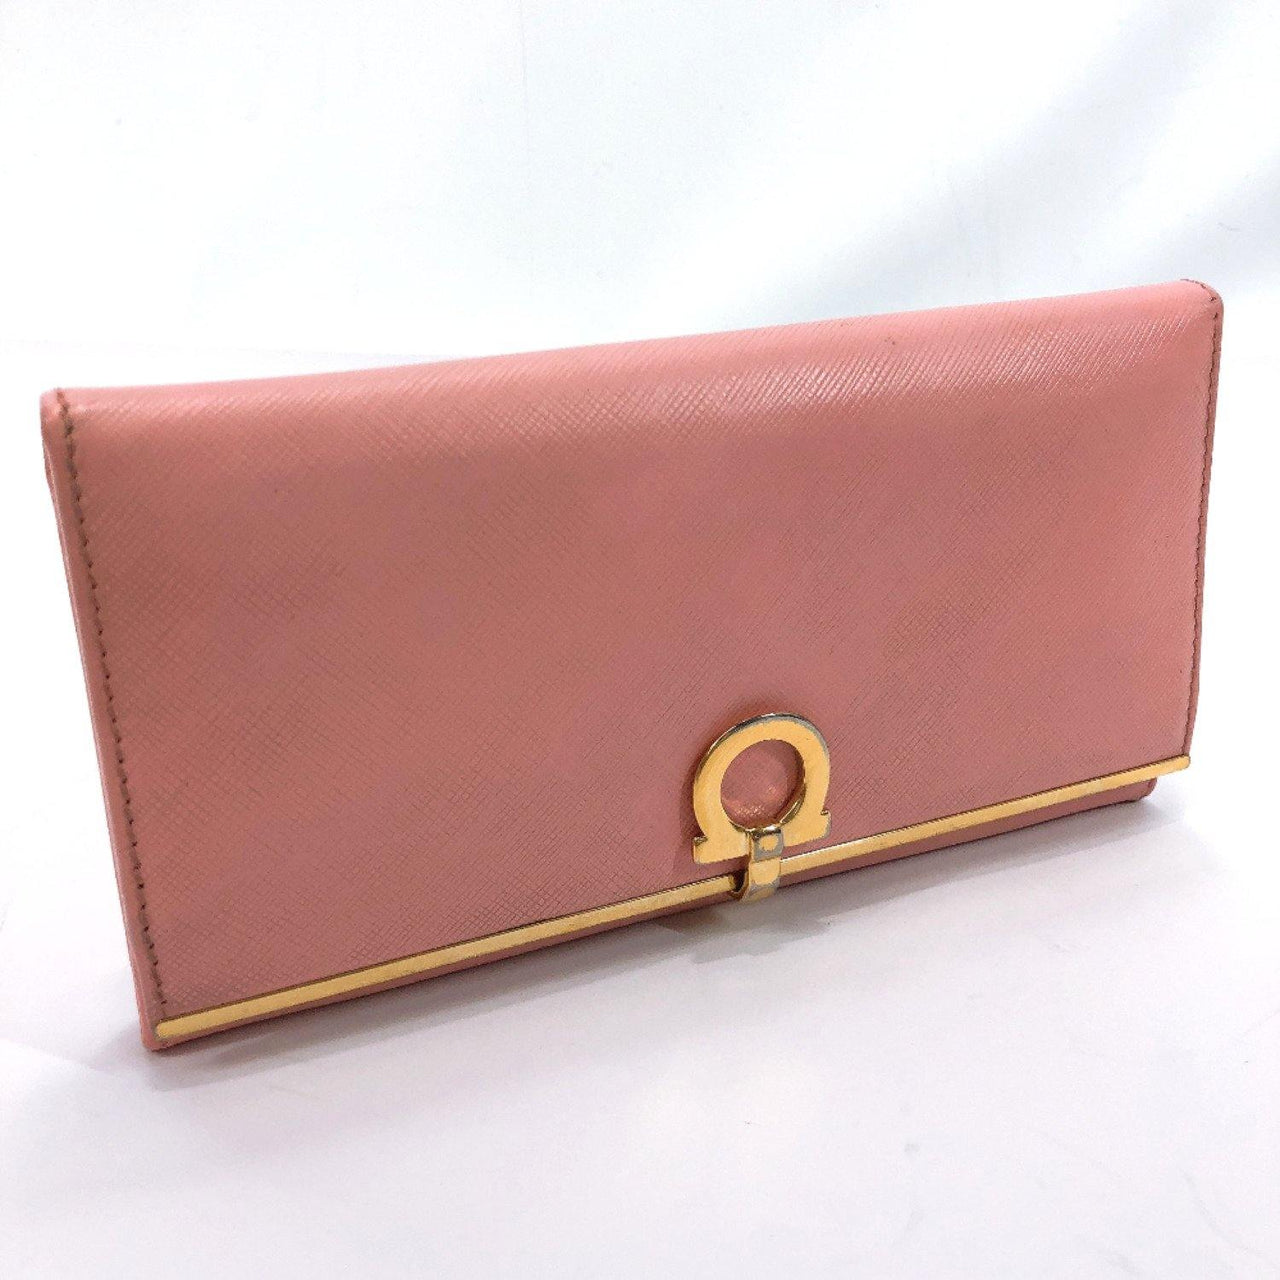 Salvatore Ferragamo purse Gancini leather pink gold Women Used - JP-BRANDS.com